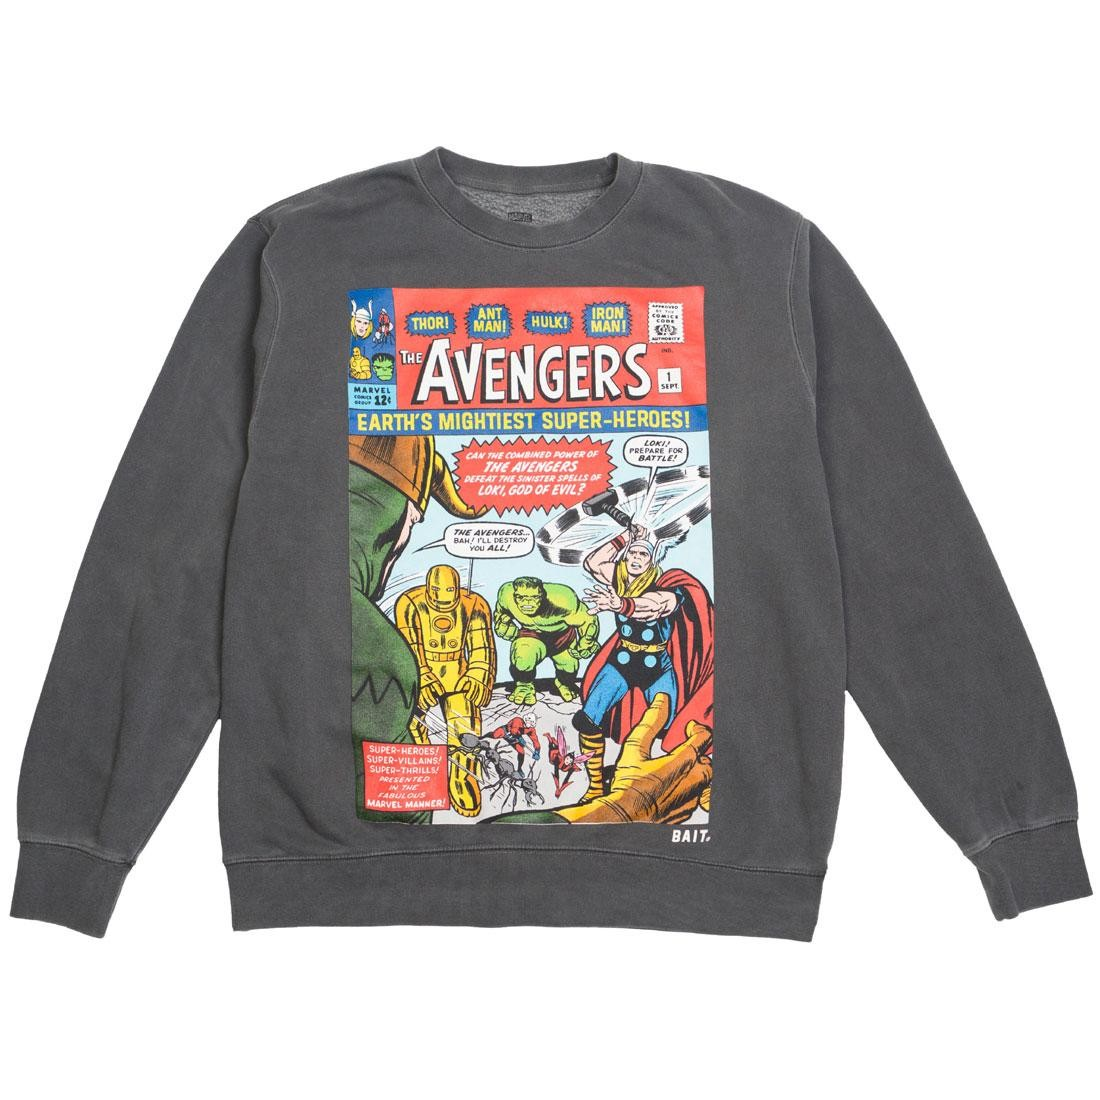 BAIT x Marvel Men Avengers - Earth's Mightiest Heroes Crewneck Sweater (black / pigment dyed)